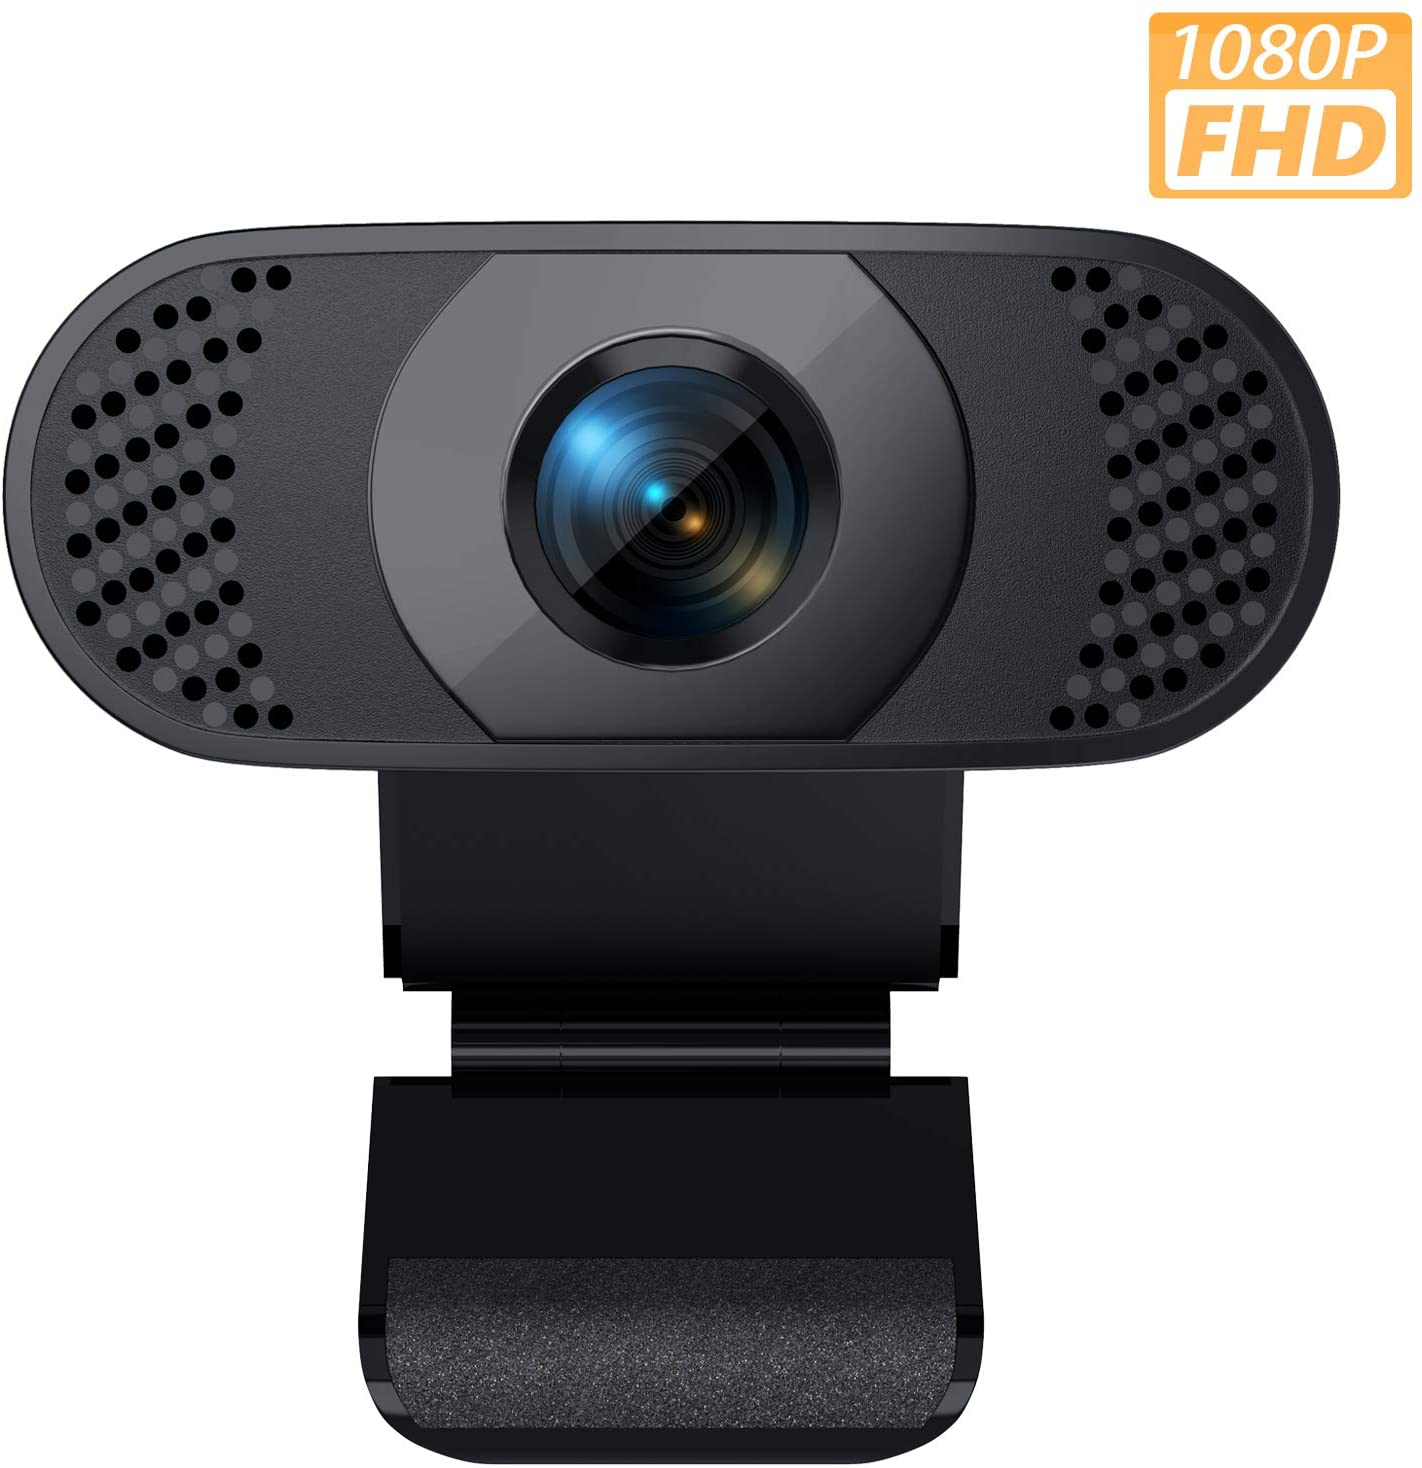 Black HD Webcam Against White Background